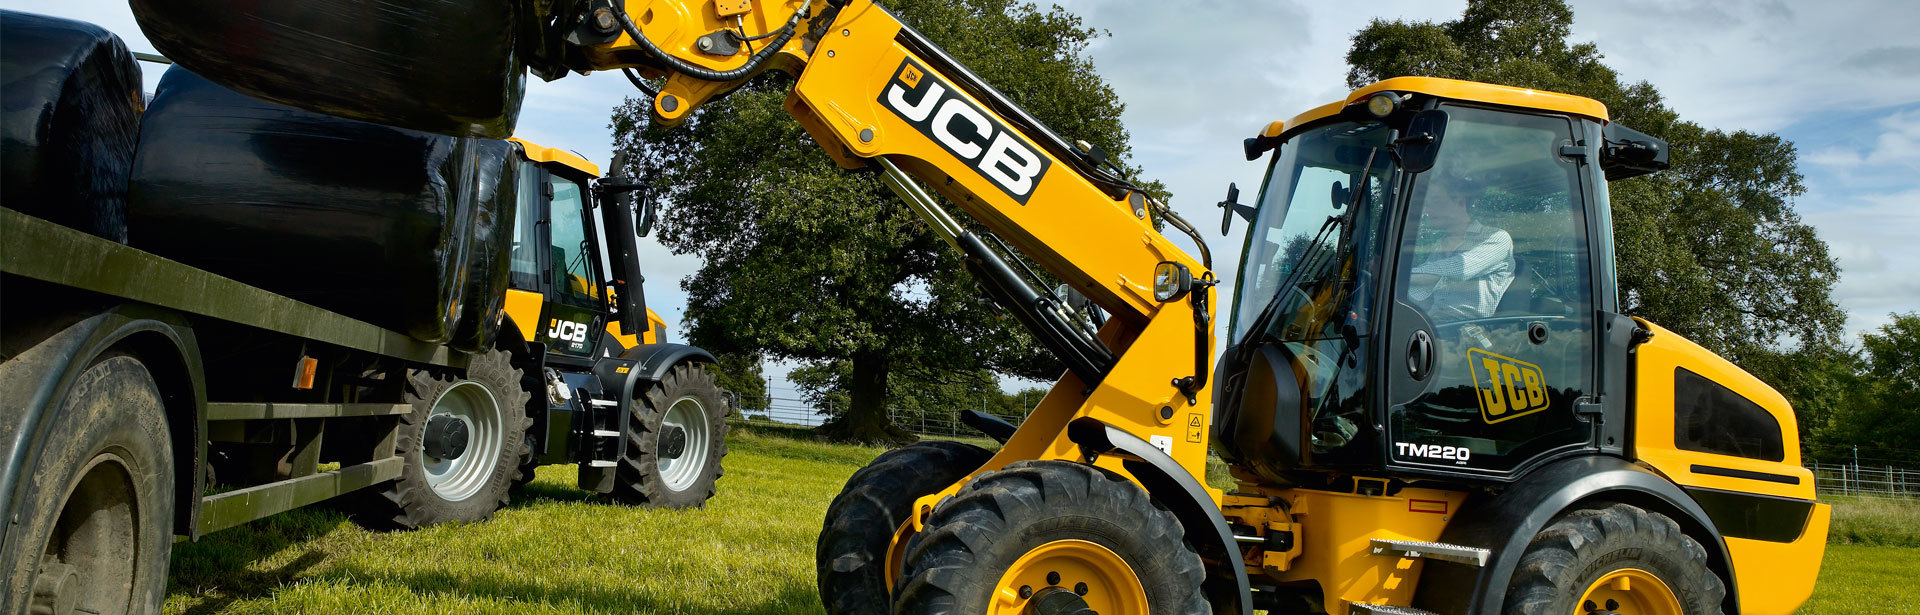 banner-jcb-telescopic-wheel-loader1.jpg